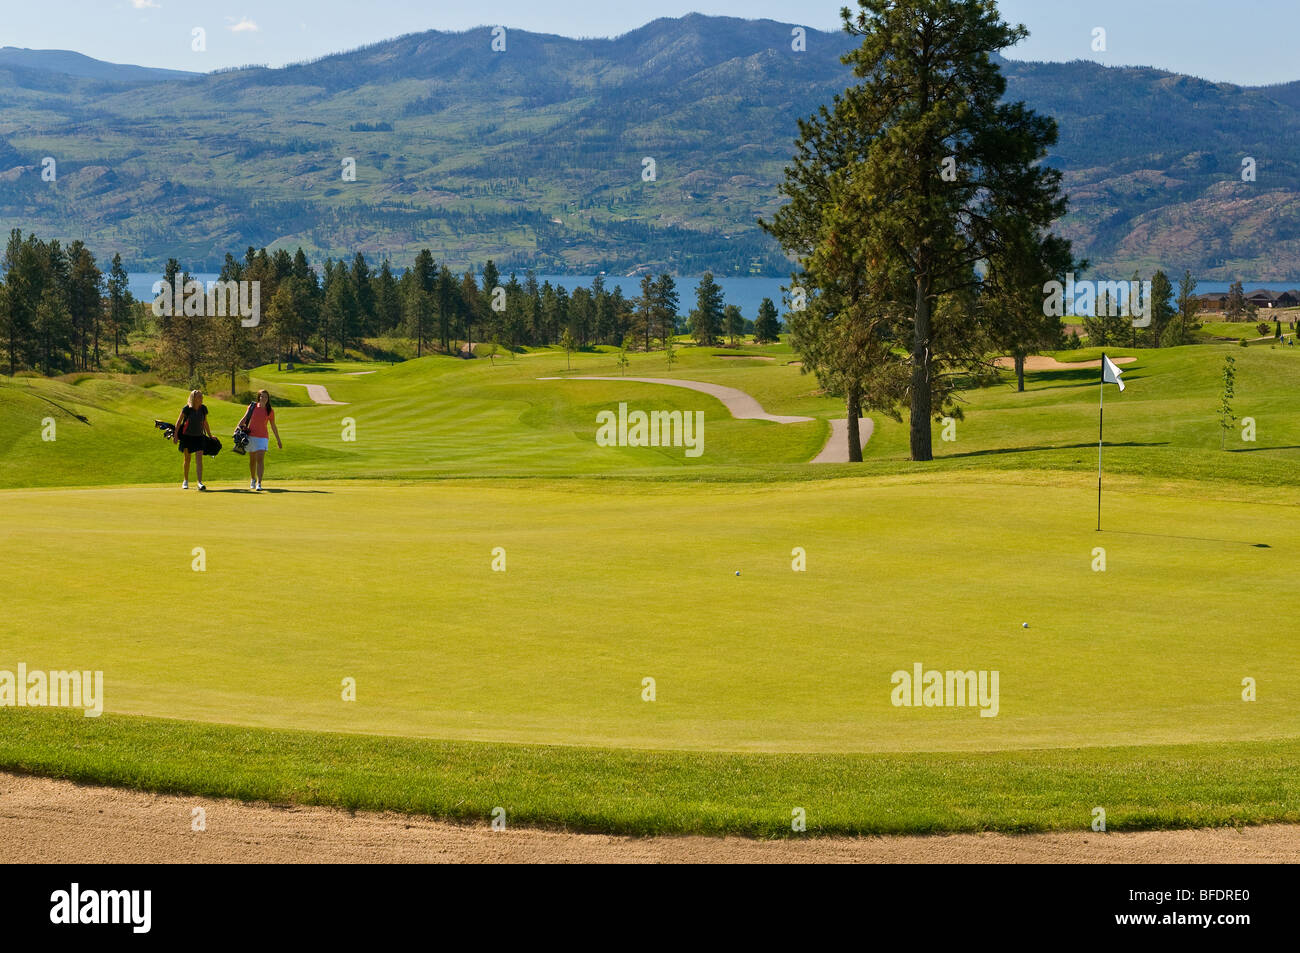 Two young women en route to the green at Two Eagles Golf Course in Westbank, British Columbia, Canada Stock Photo